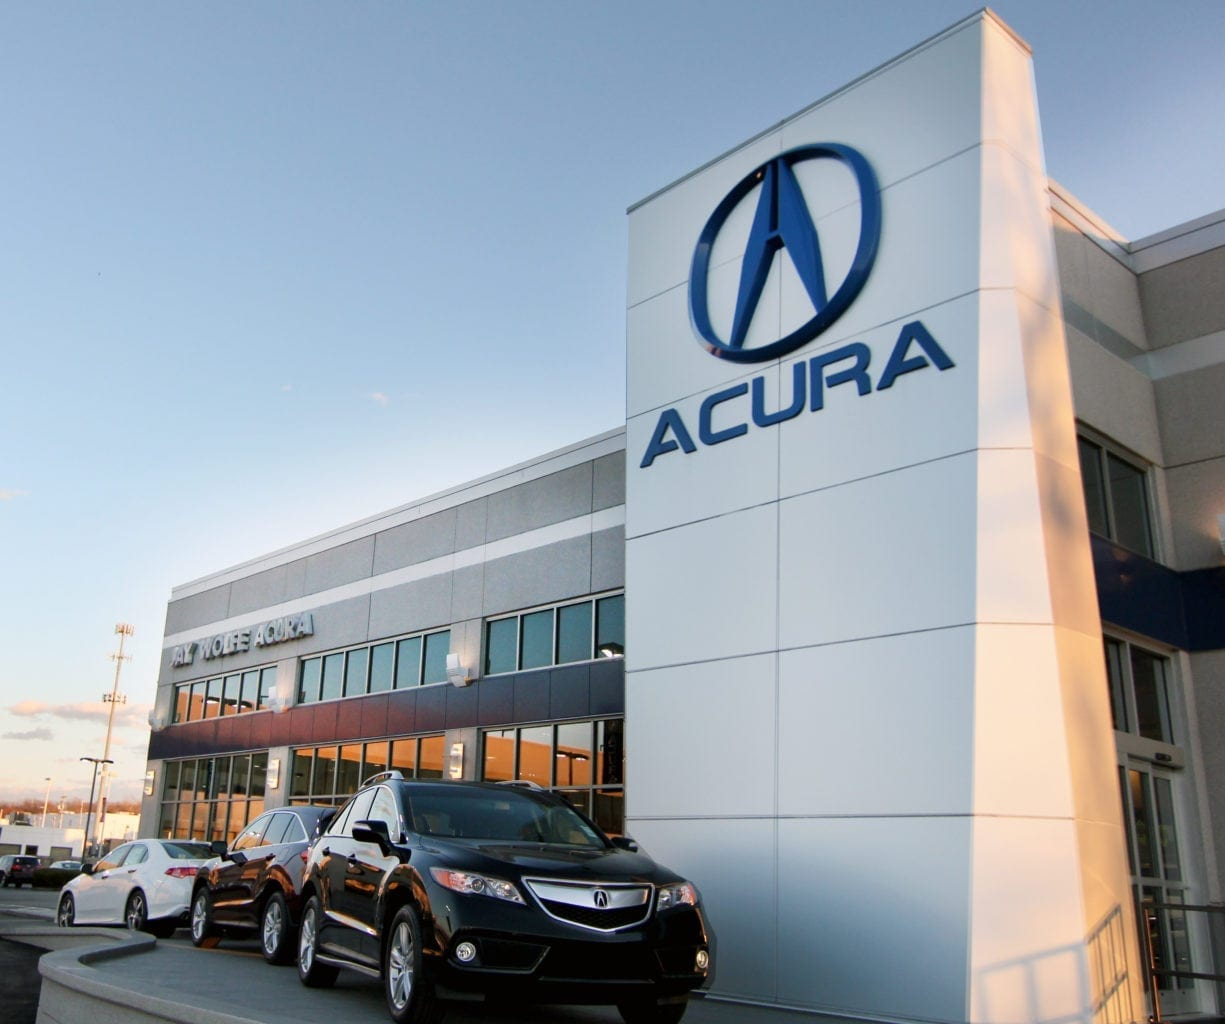 Jay Wolfe Acura >> Jay Wolfe Acura Kansas City Acura And Used Car Dealership